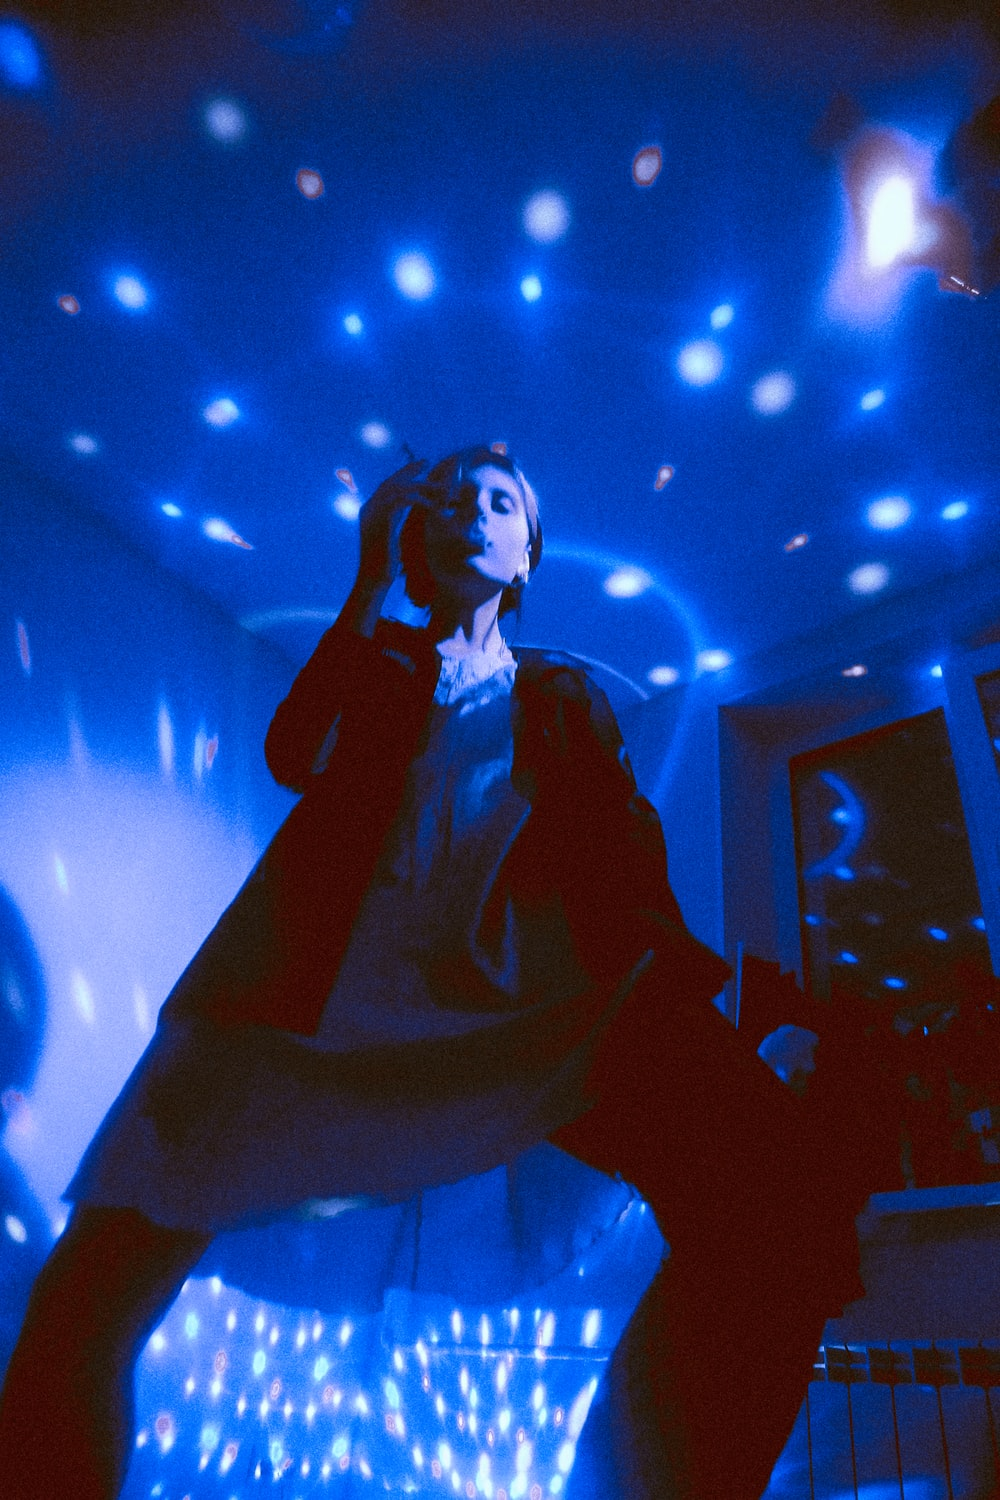 woman standing while dancing with blue LED lights background